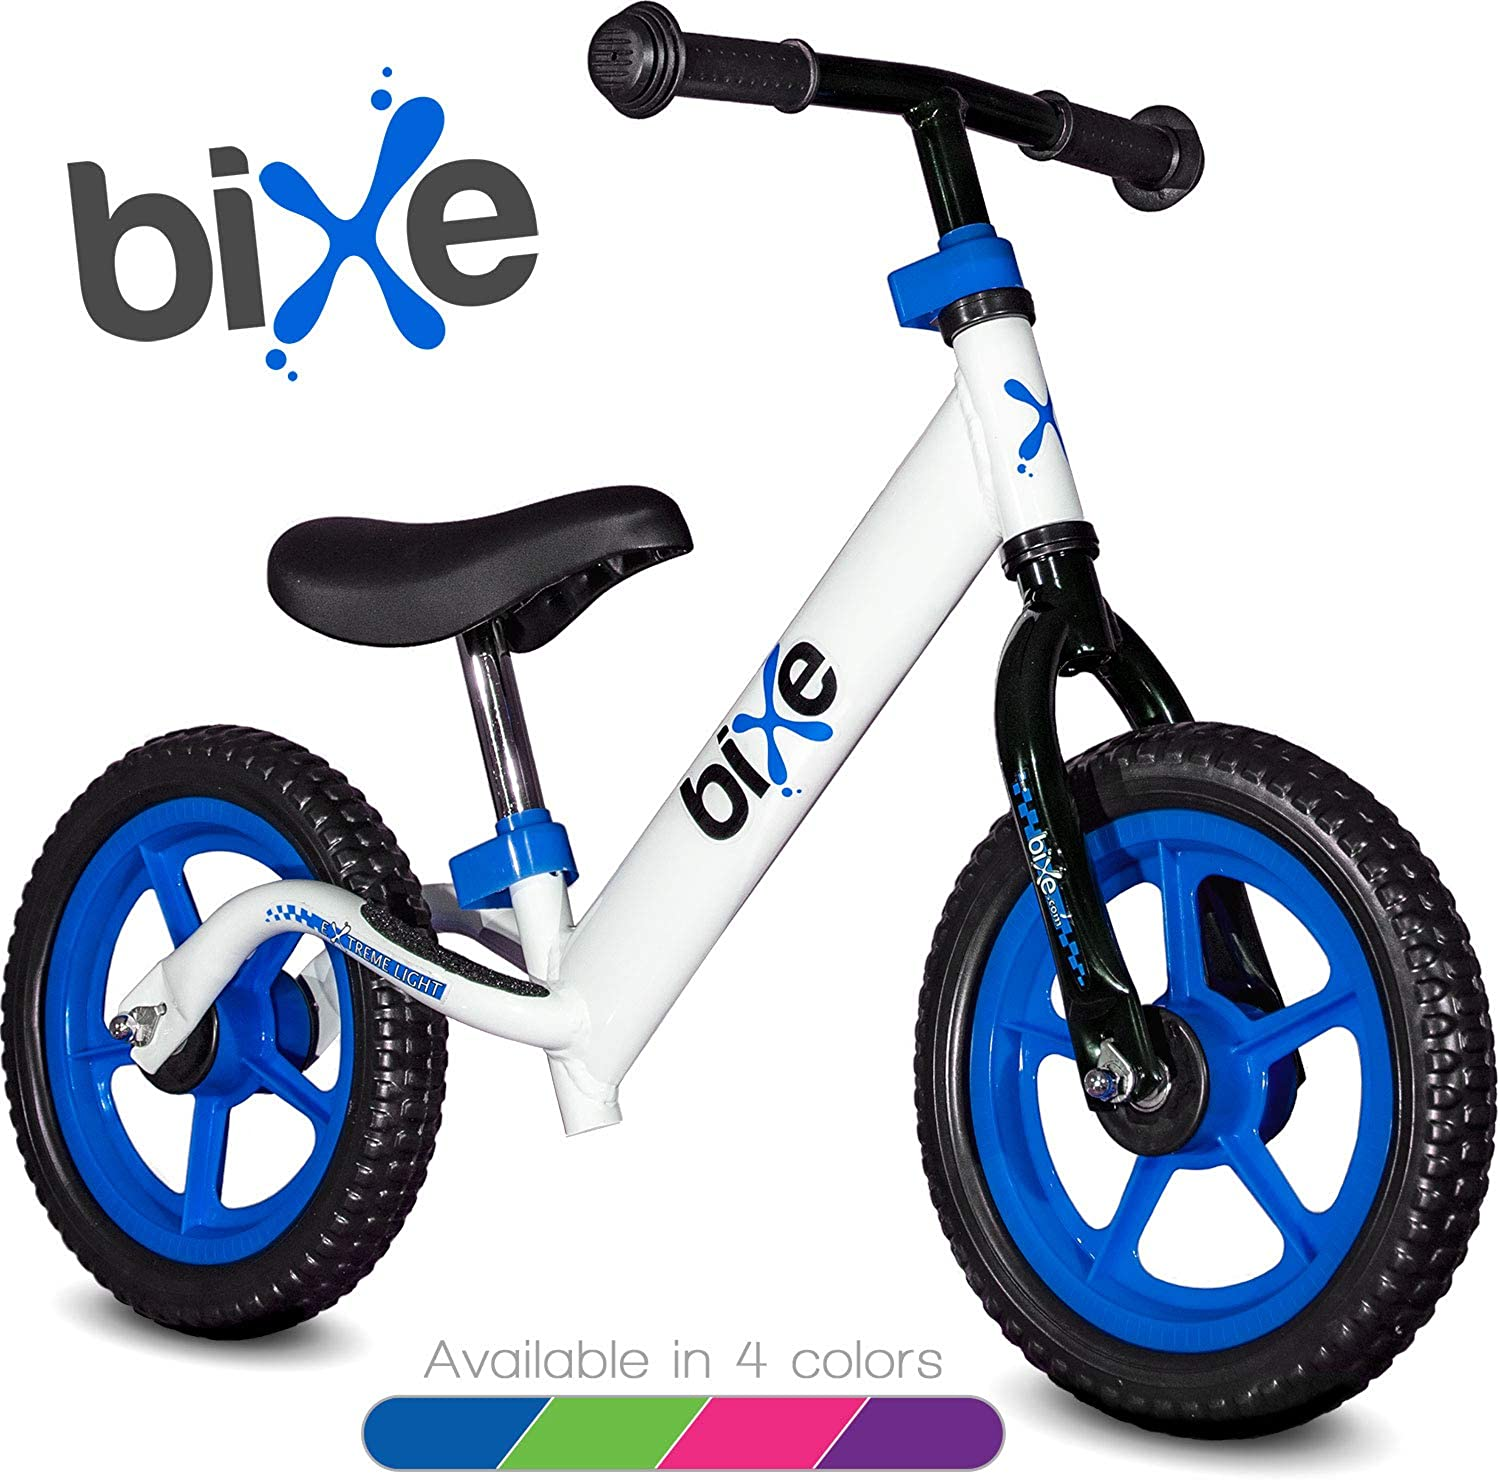 (4 lbs) Balance Bike for Kids and Toddlers  Aluminum Light Weight No Pedals Push and Stride Walking Bicycle (blueee)